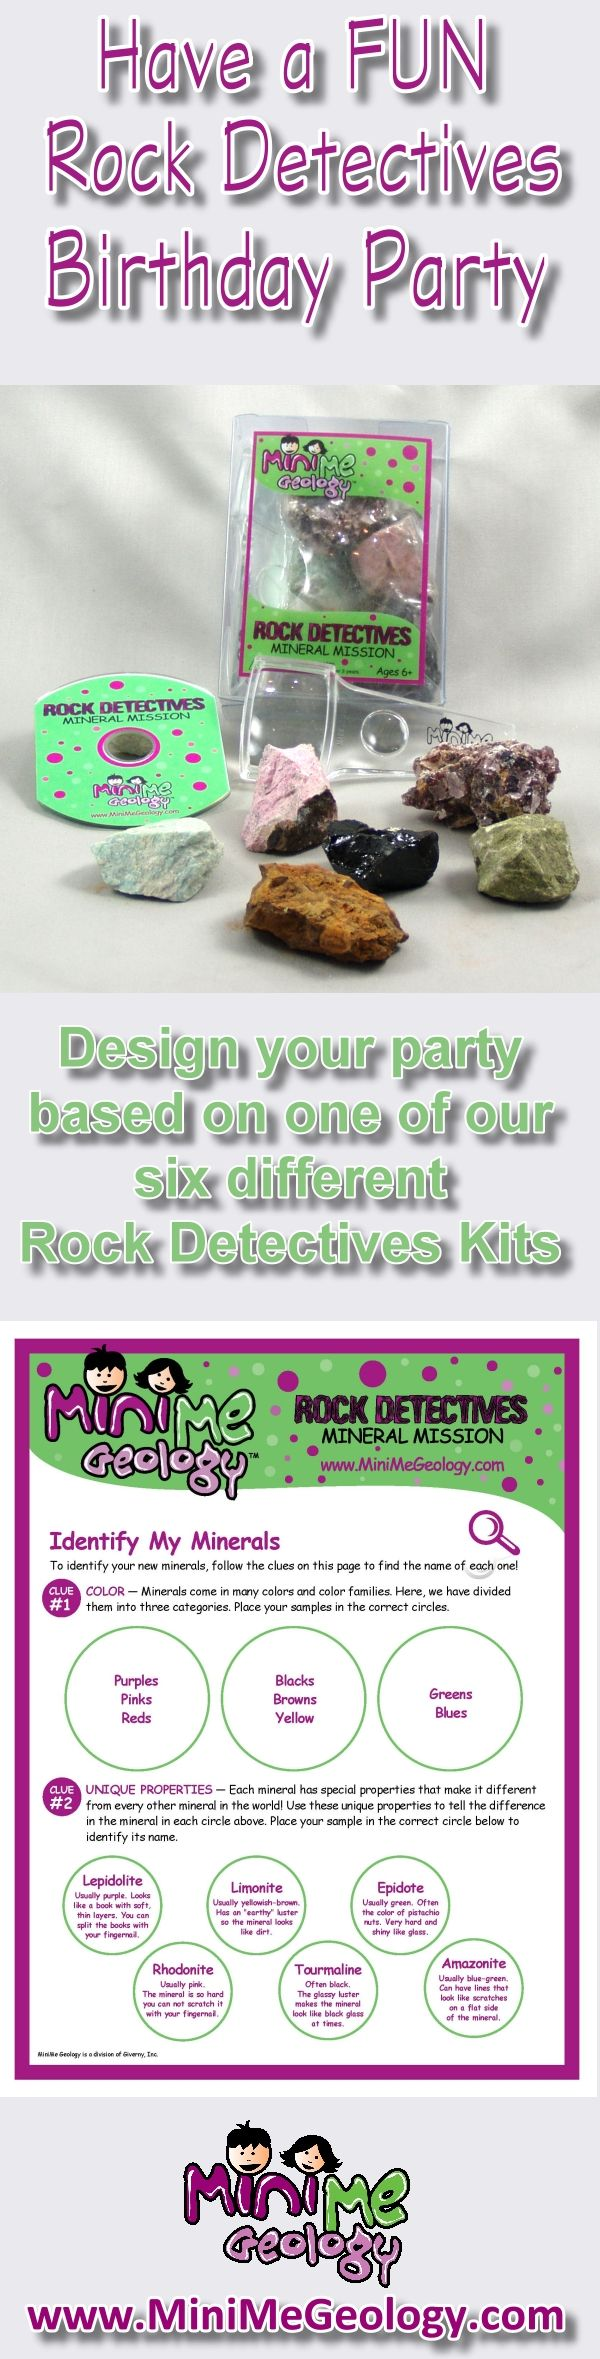 Have a fun Rock Detectives Birthday Party this year. Mini